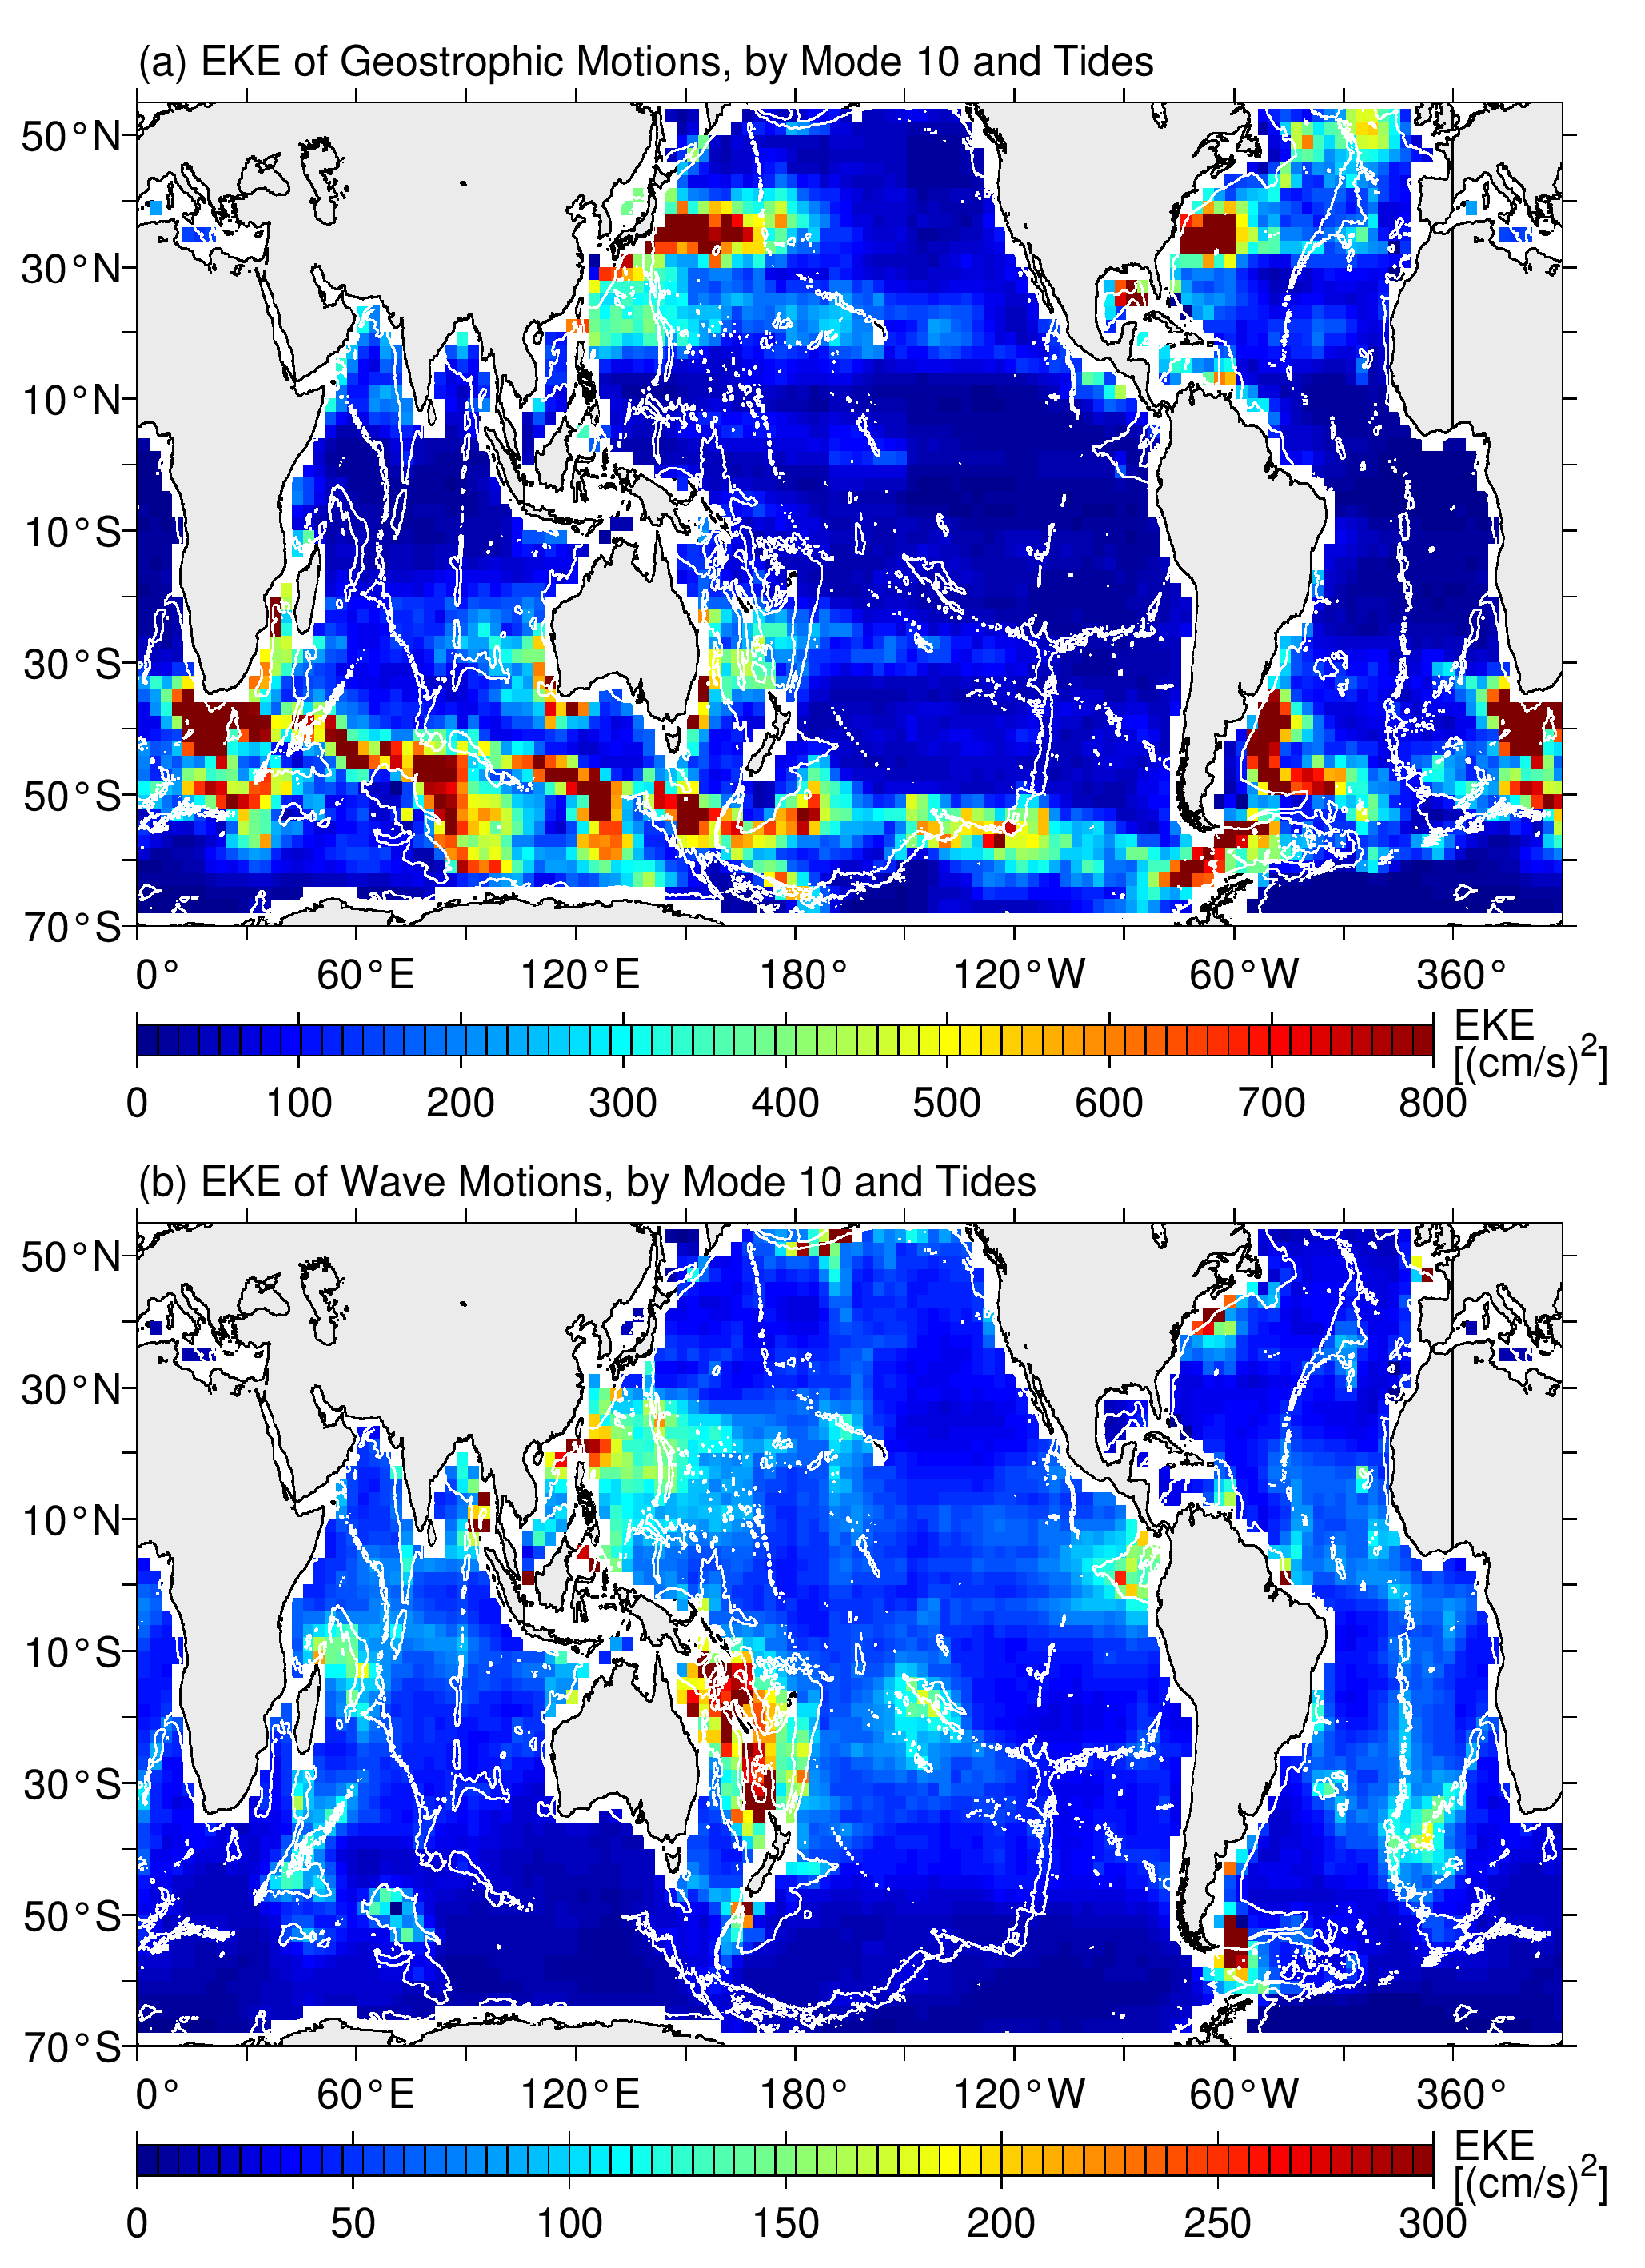 Distribution of surface eddy kinetic energy of (a) balanced geostrophic motions and (b) unbalanced wave motions based on the dynamical delineation method